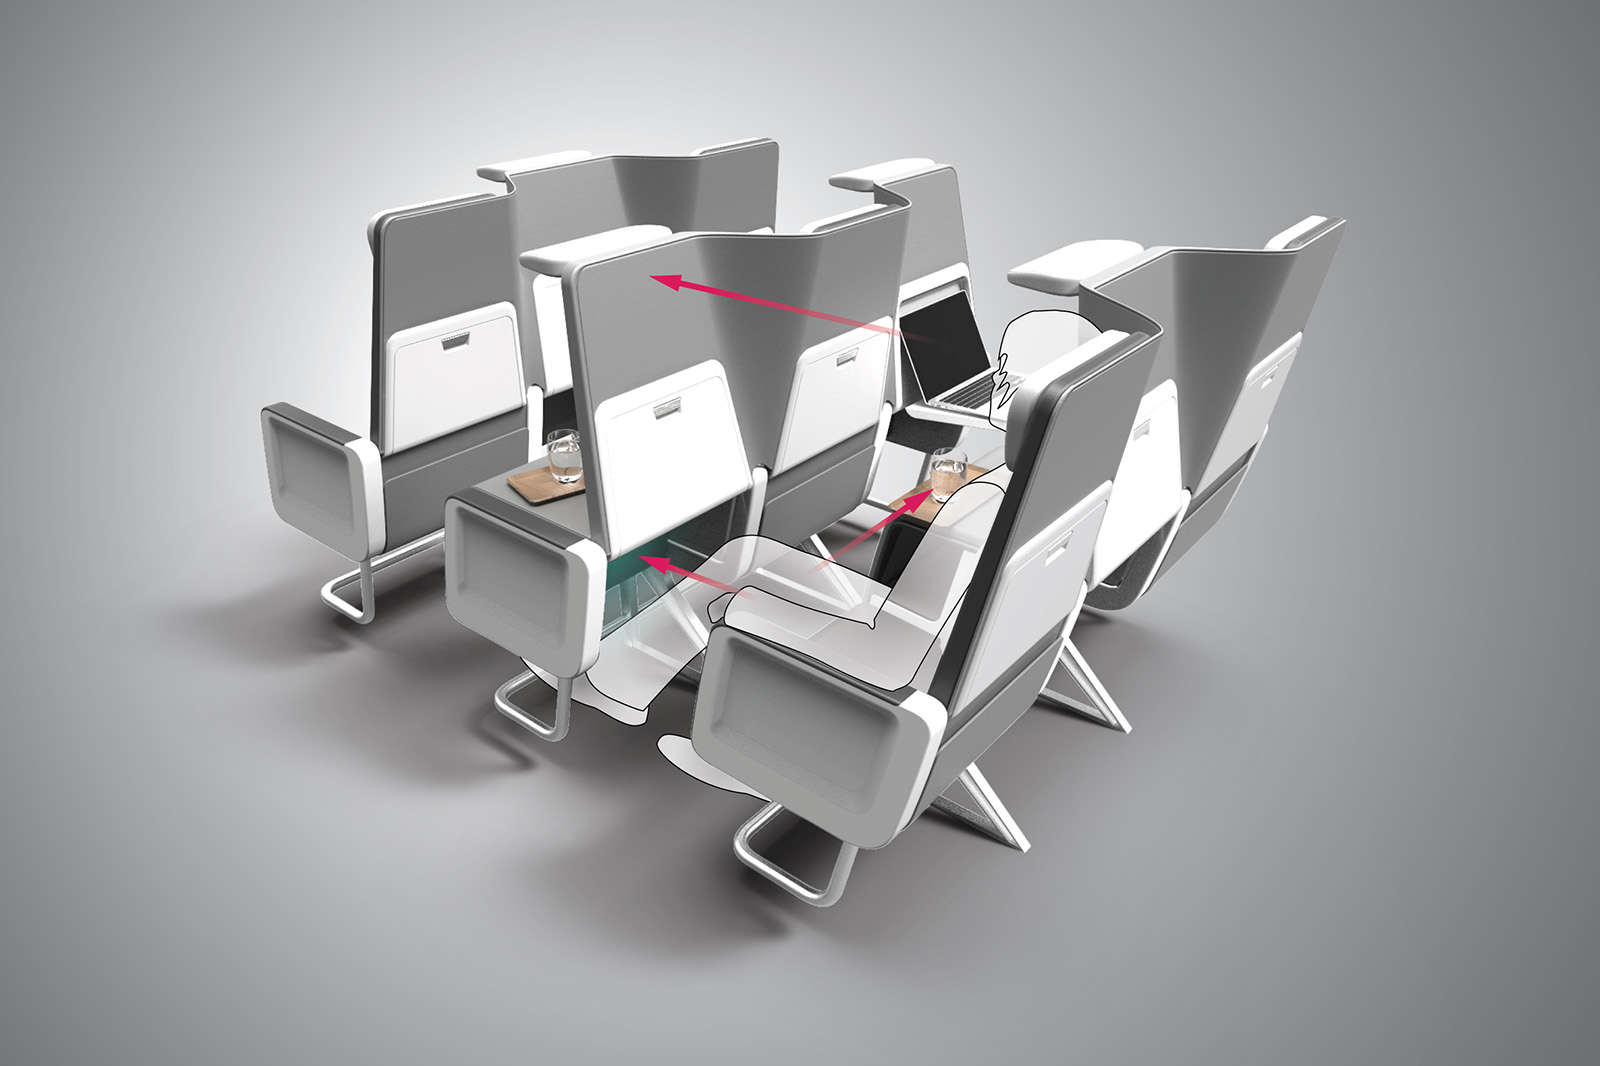 Stretch Out - Unlike typical Euro-style convertible business class seats, Checkerboard provides much greater personal space to the Business class passengers. The folded seats create up to 8 inches of additional legroom, while the re-positioned seat-back in front adds to the perception of increased space. This creates a truly differentiated experience from the economy class seat.